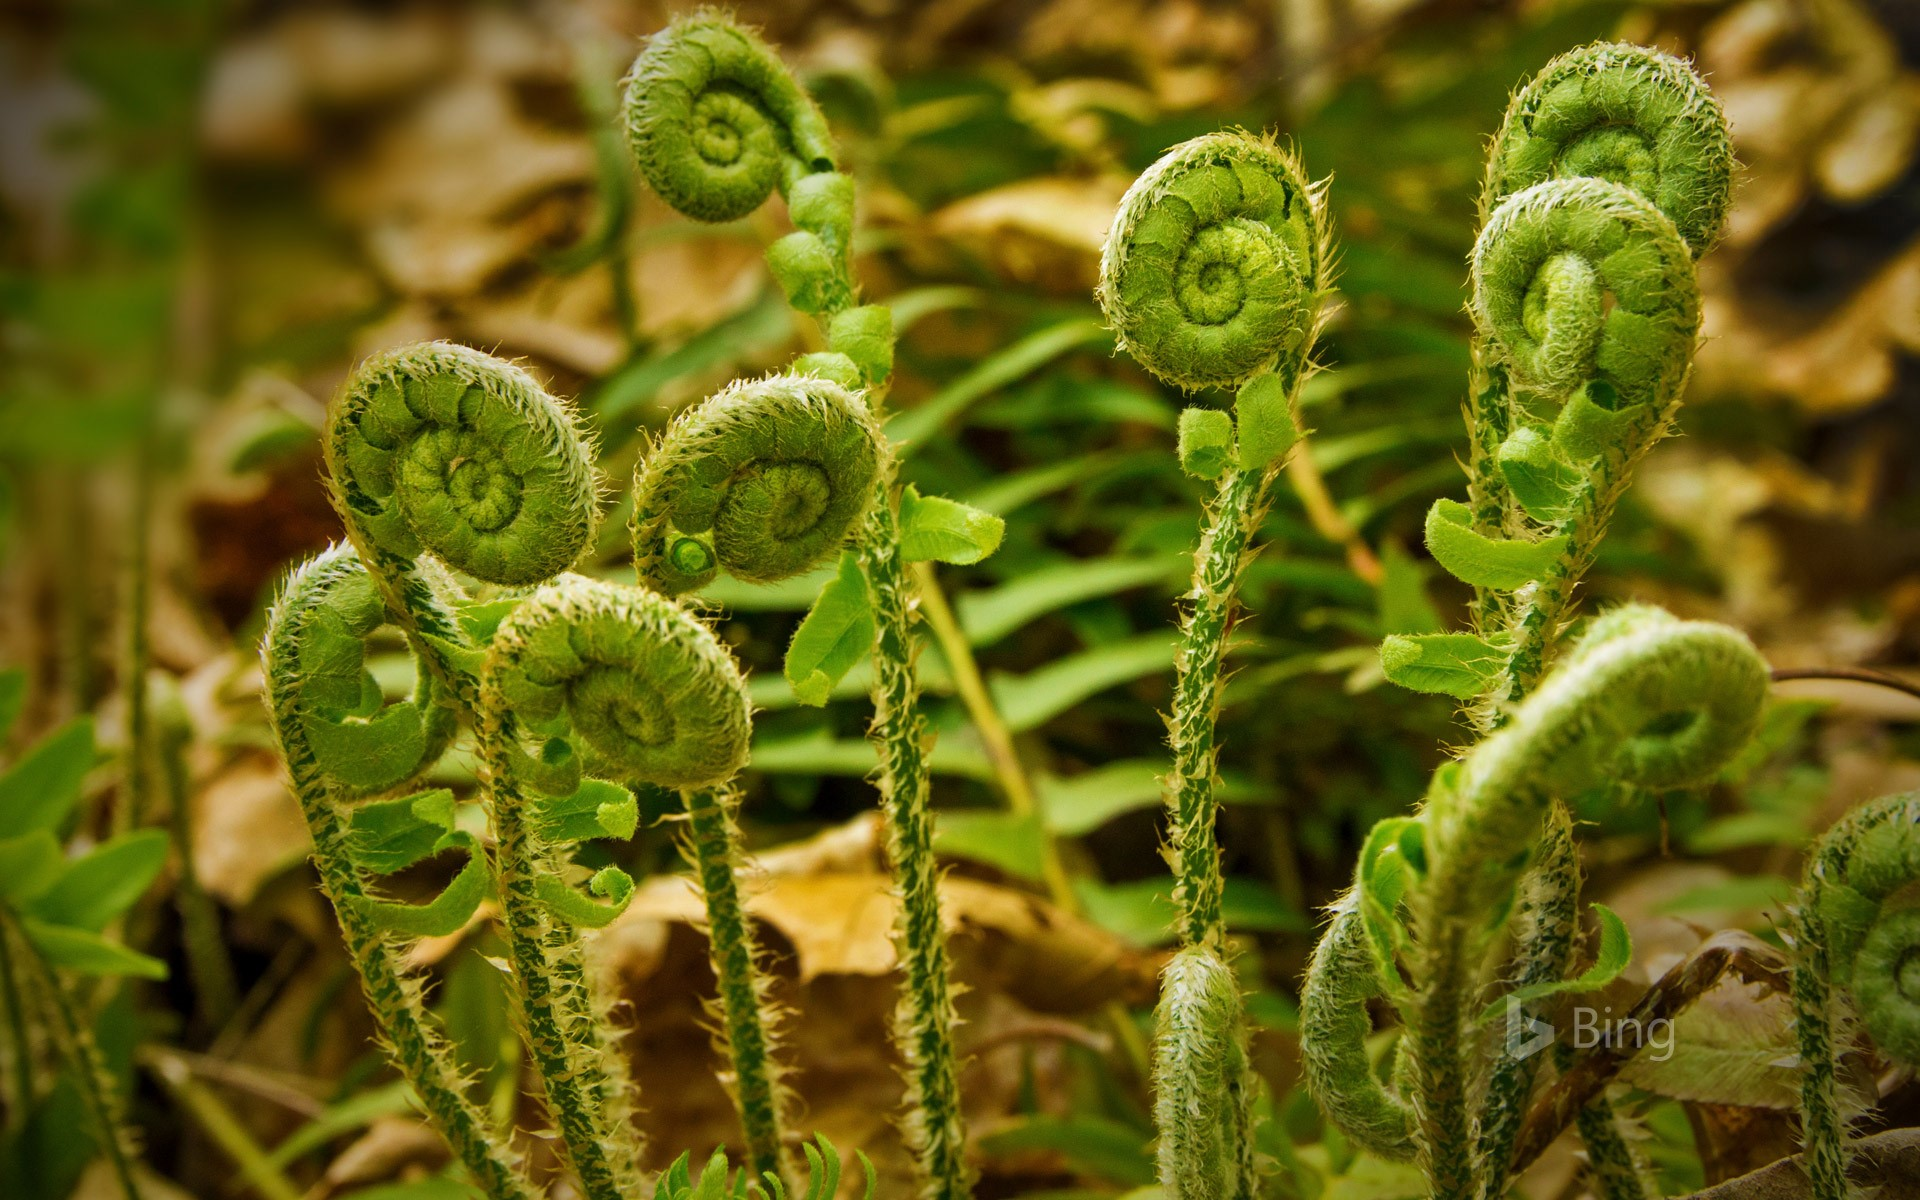 Fiddlehead ferns at Valley Falls Park in Vernon, Connecticut